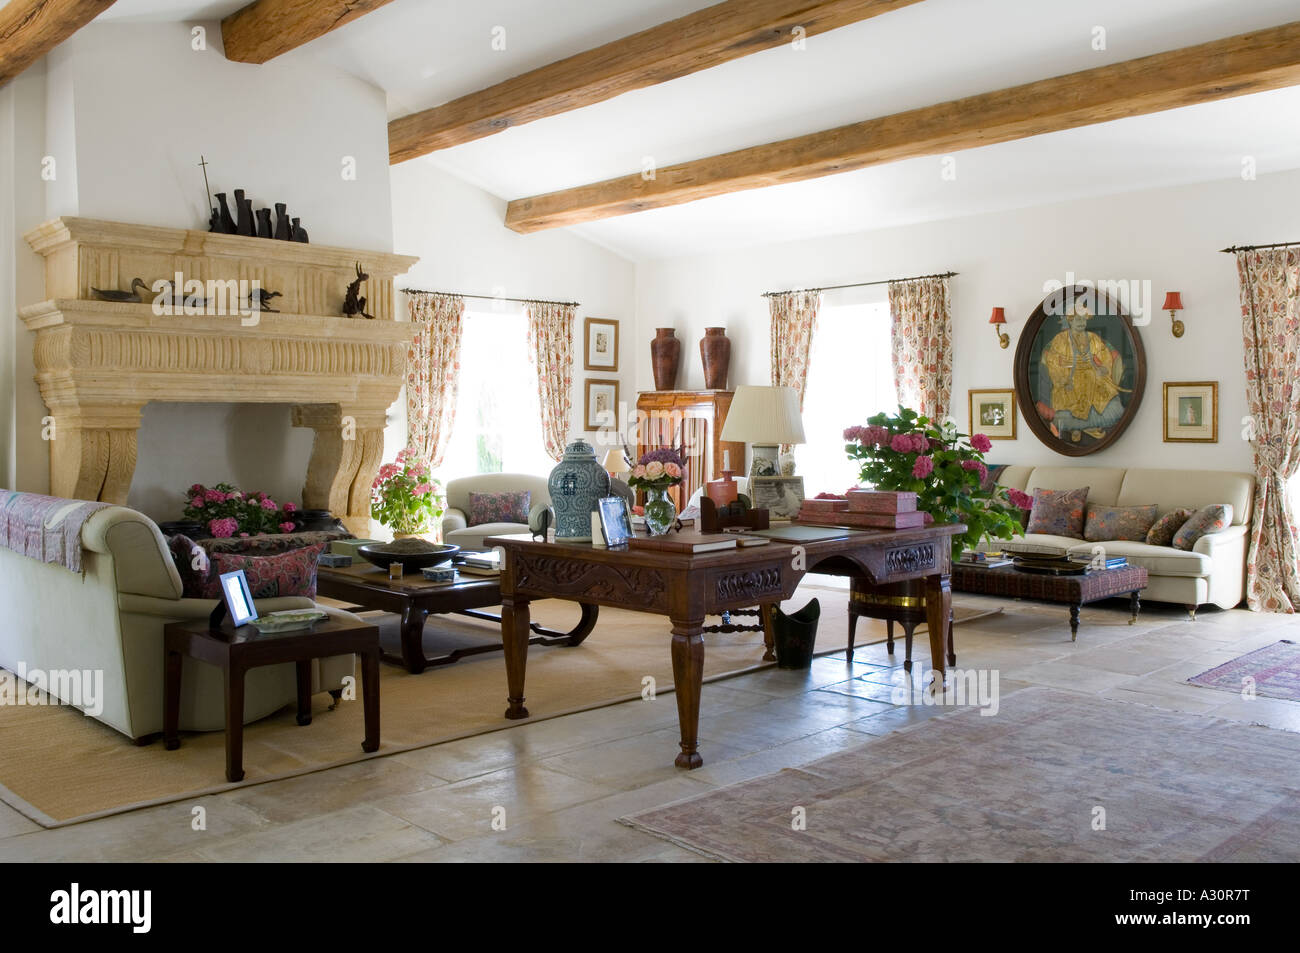 Spacious beamed living room with desk and stone fireplace - Stock Image